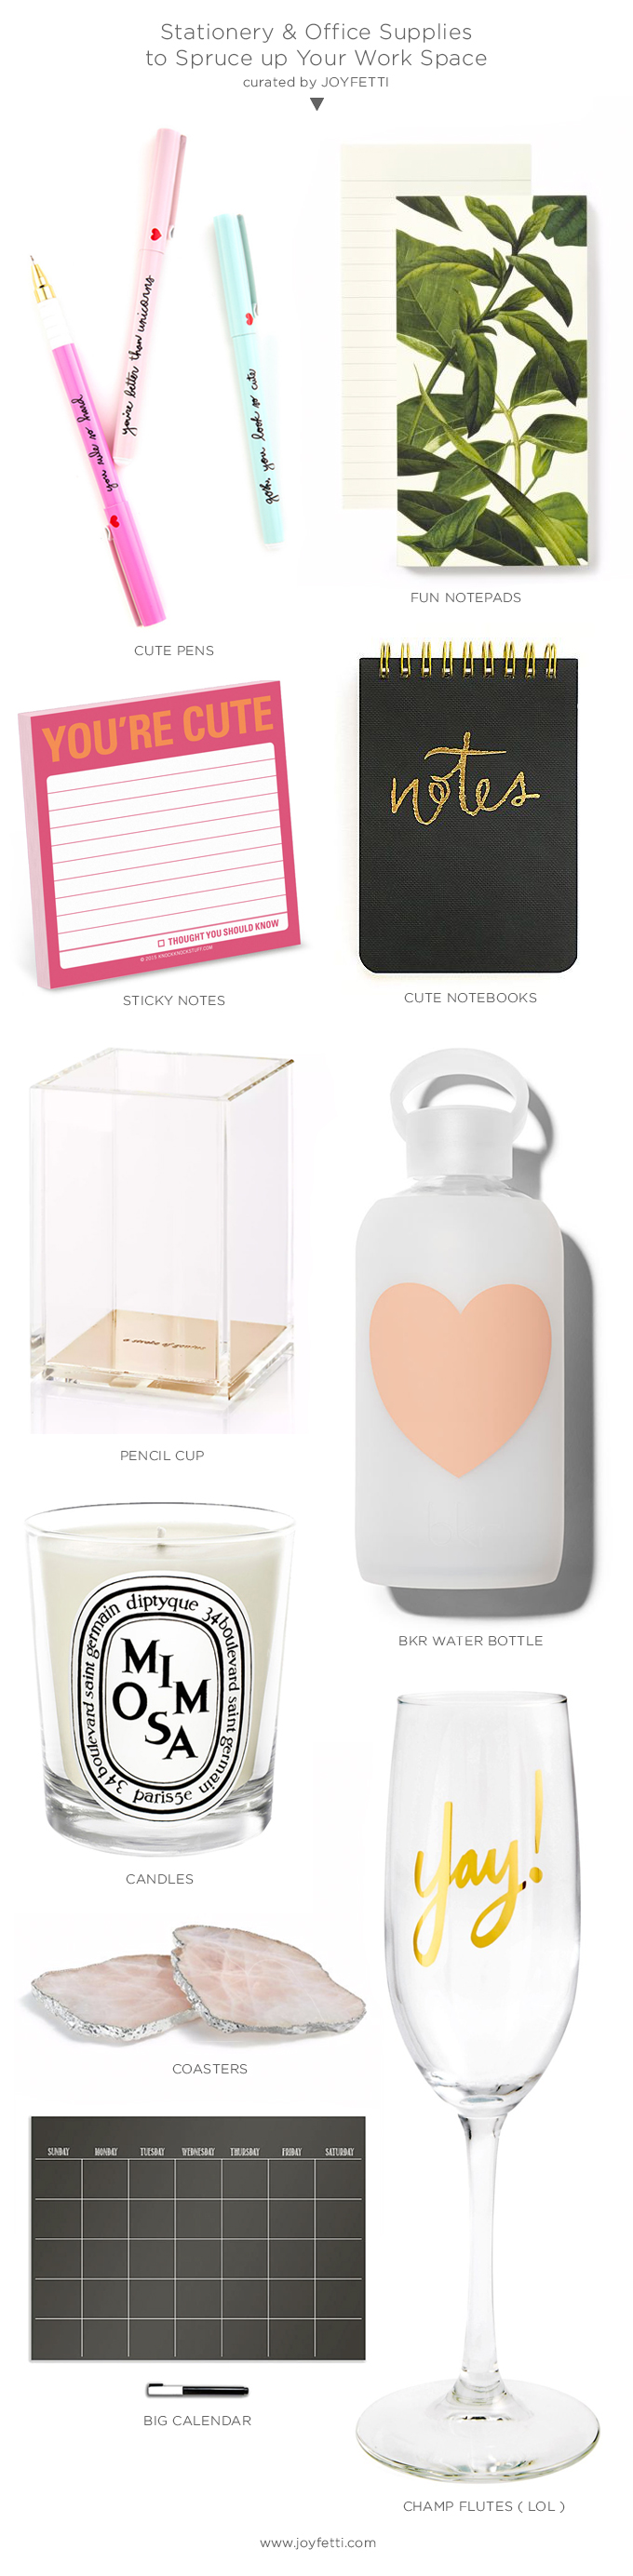 Stationery & Office Supplies to Spruce up Your Work Space_joyfetti.com